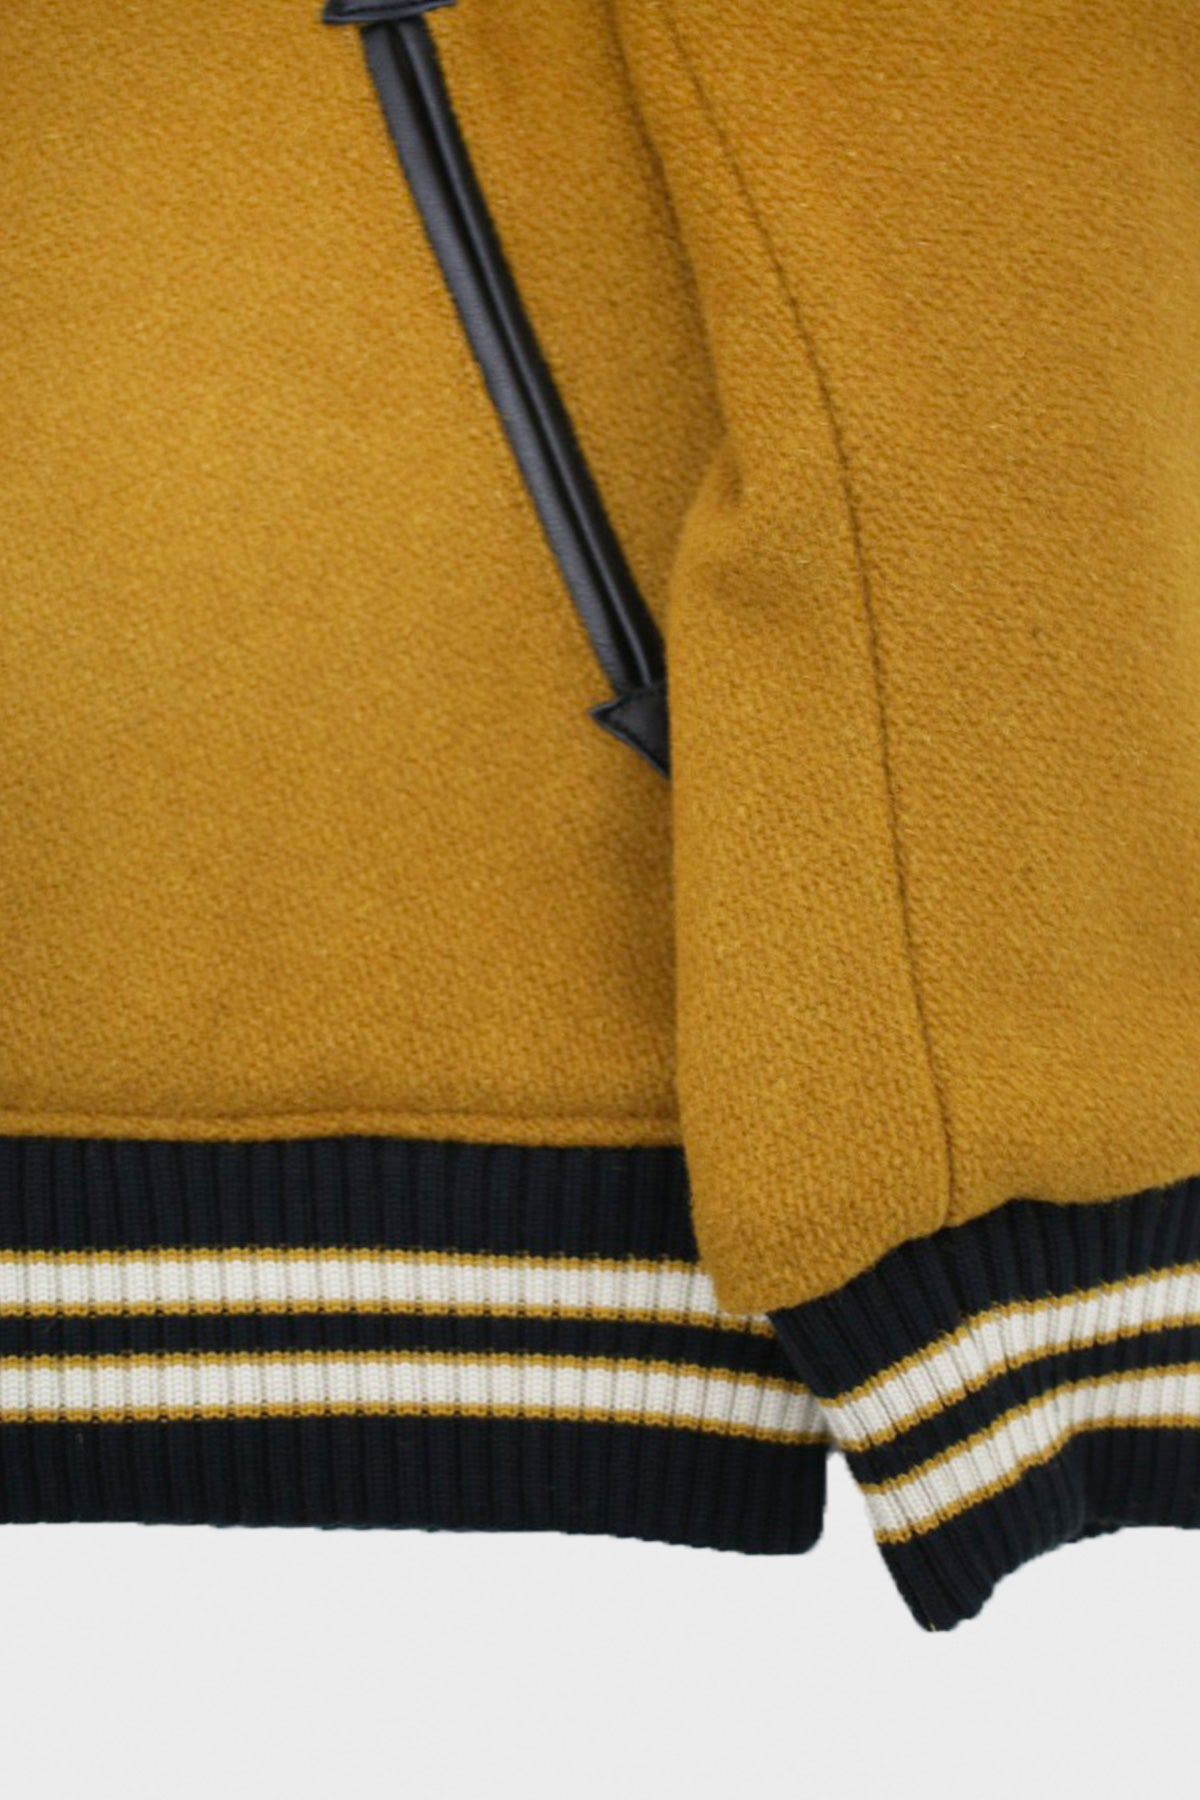 Sugar Cane - Award Jacket - Gold - Canoe Club